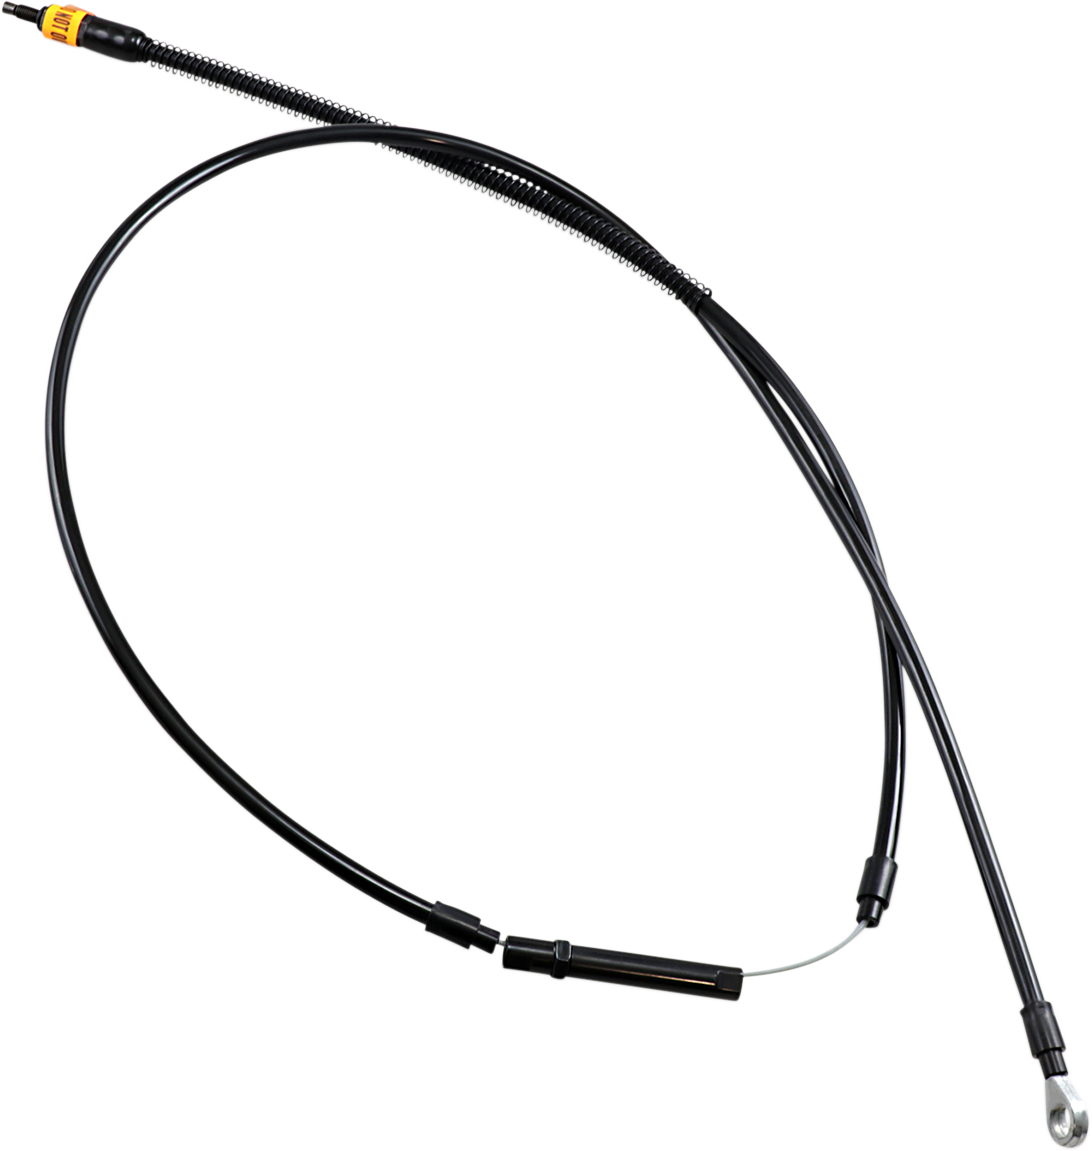 Stealth Series Clutch Cable Barnett Performance Products 131-30-10005HE3 +3 in